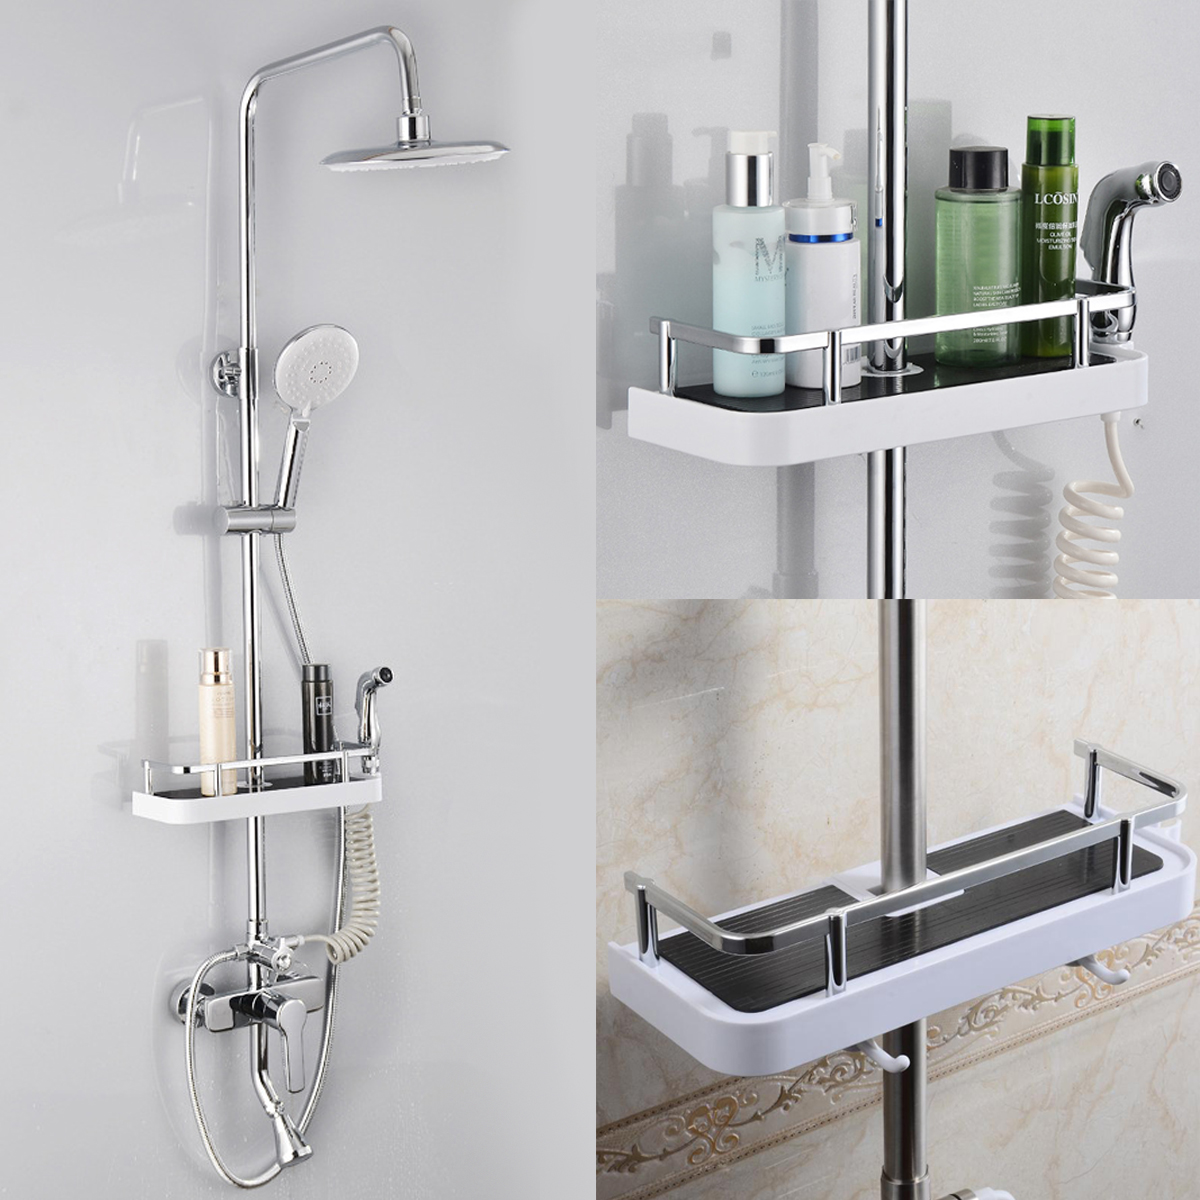 1 pc Badezimmer Regal Dusche Storage Rack Shampoo Halter Bad ...